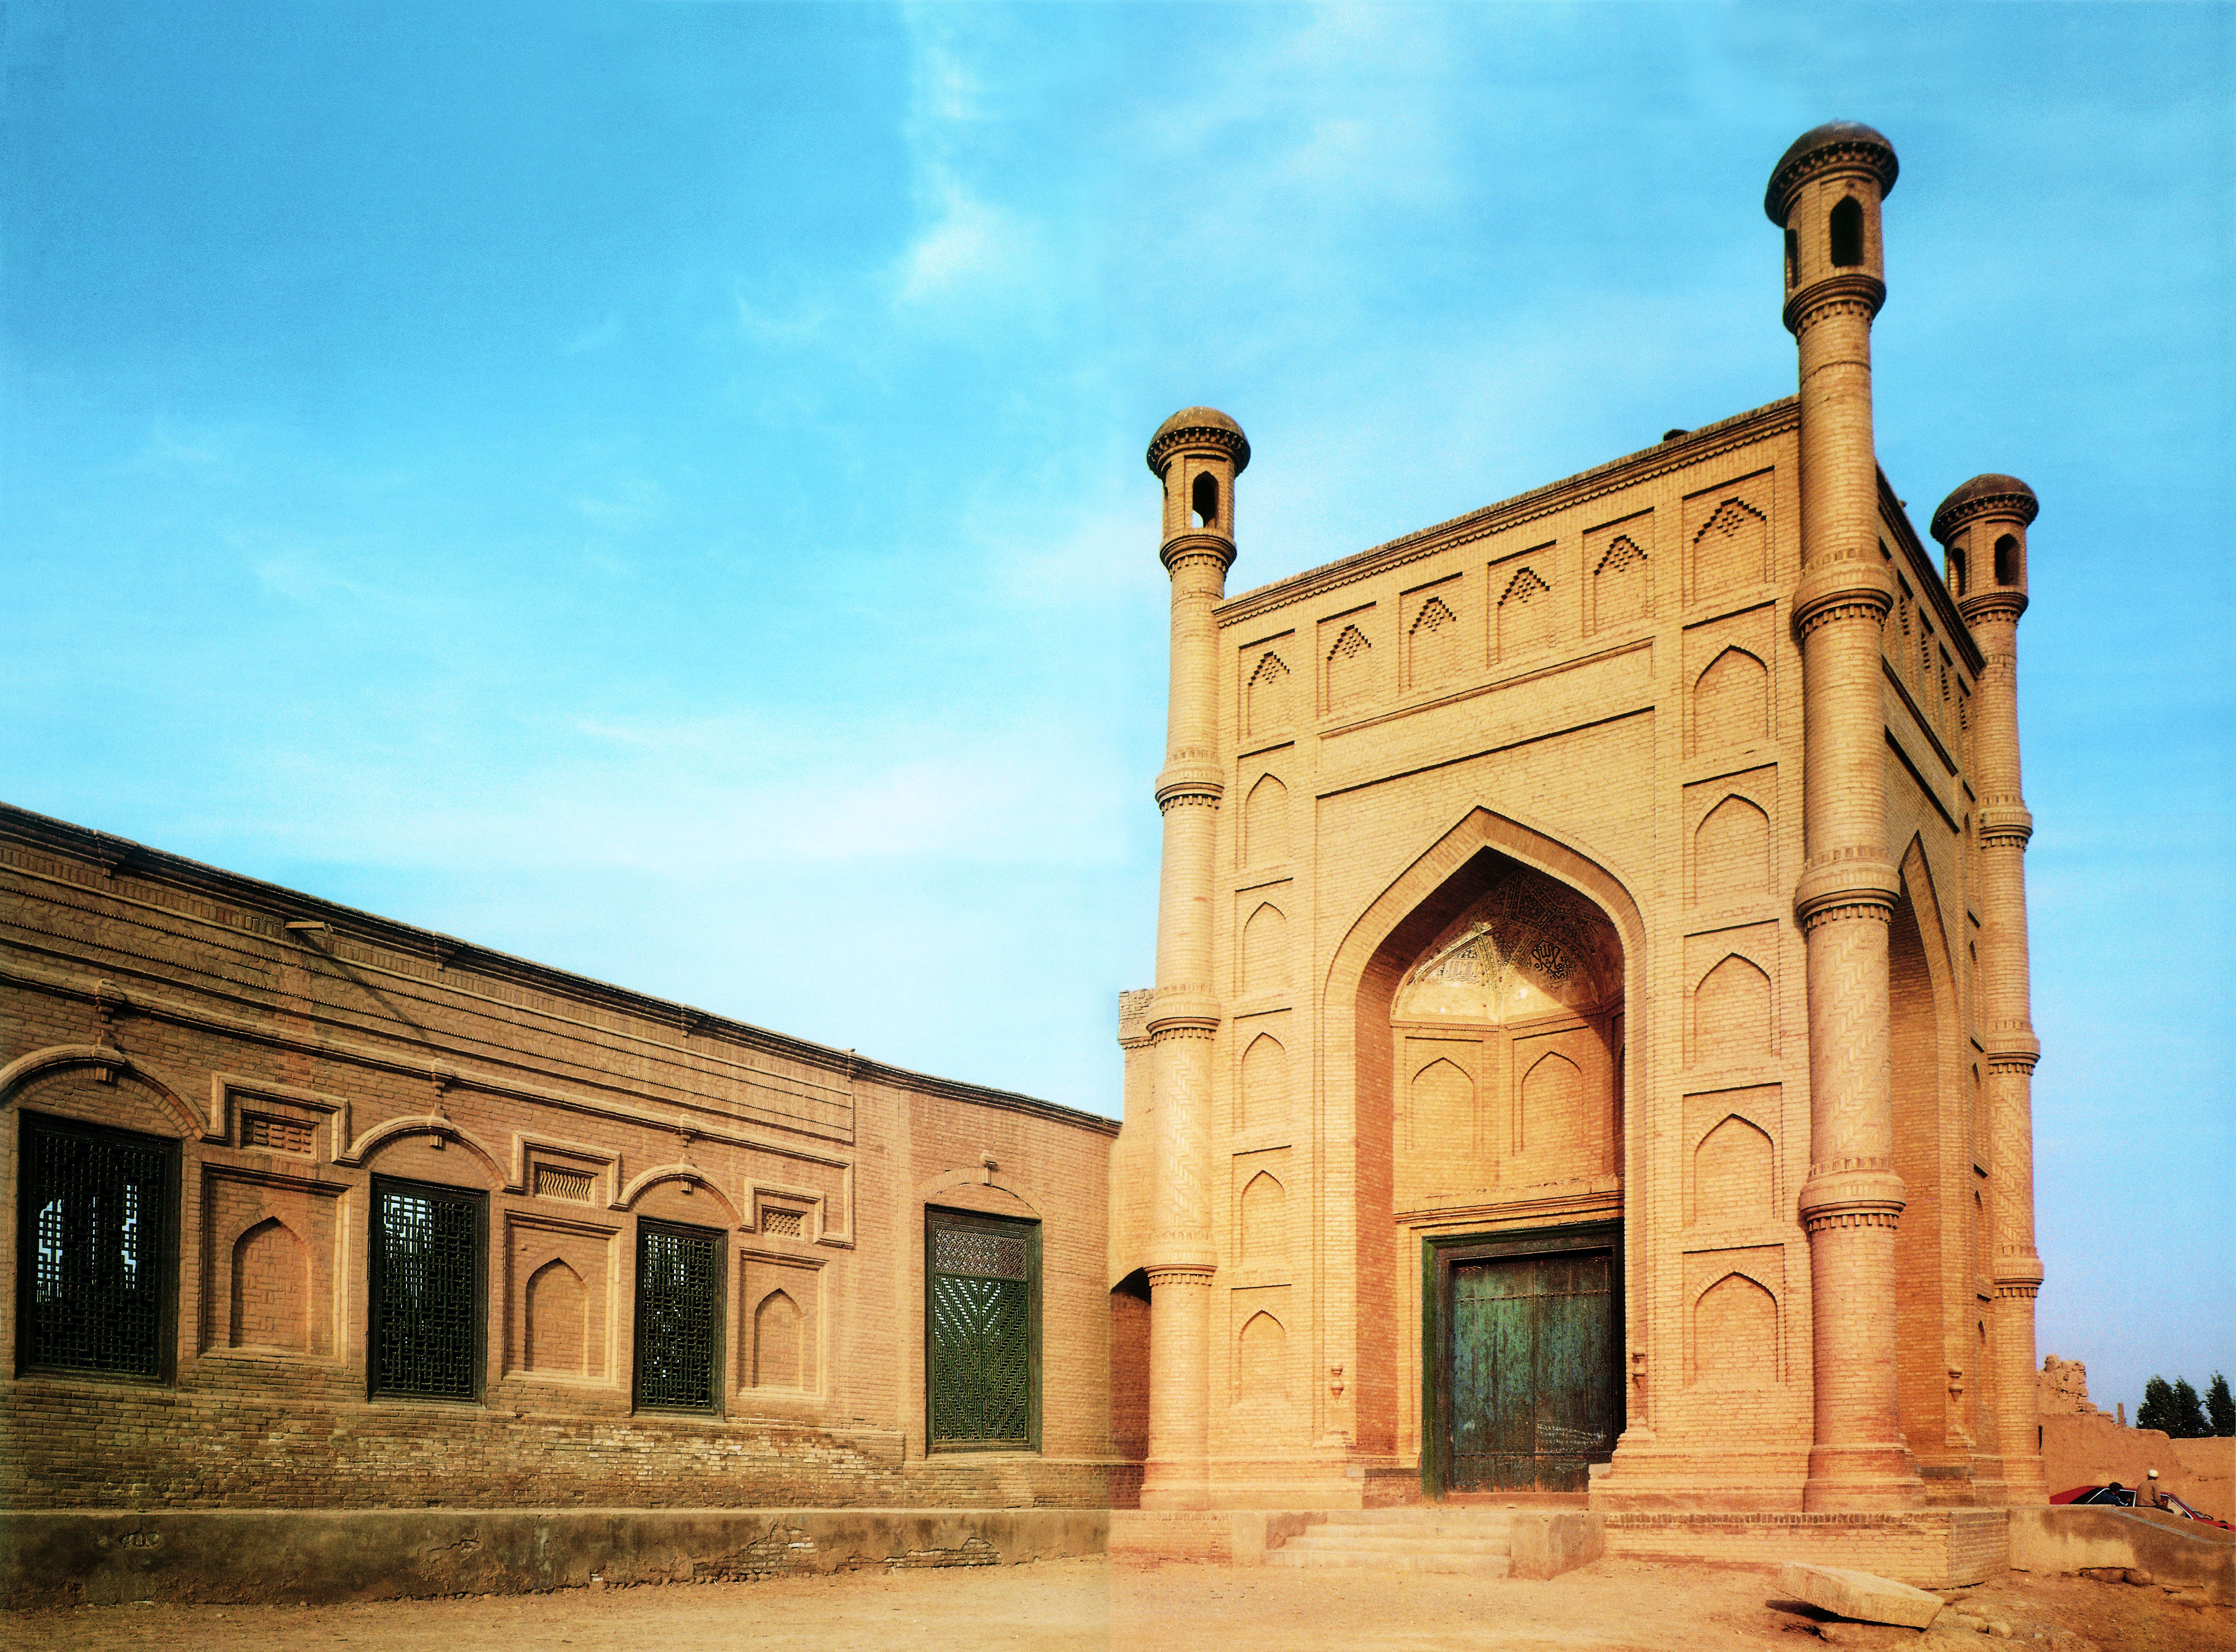 Great Architecture Buildings exterior view of the great mosque in kuche, xinjiang. from